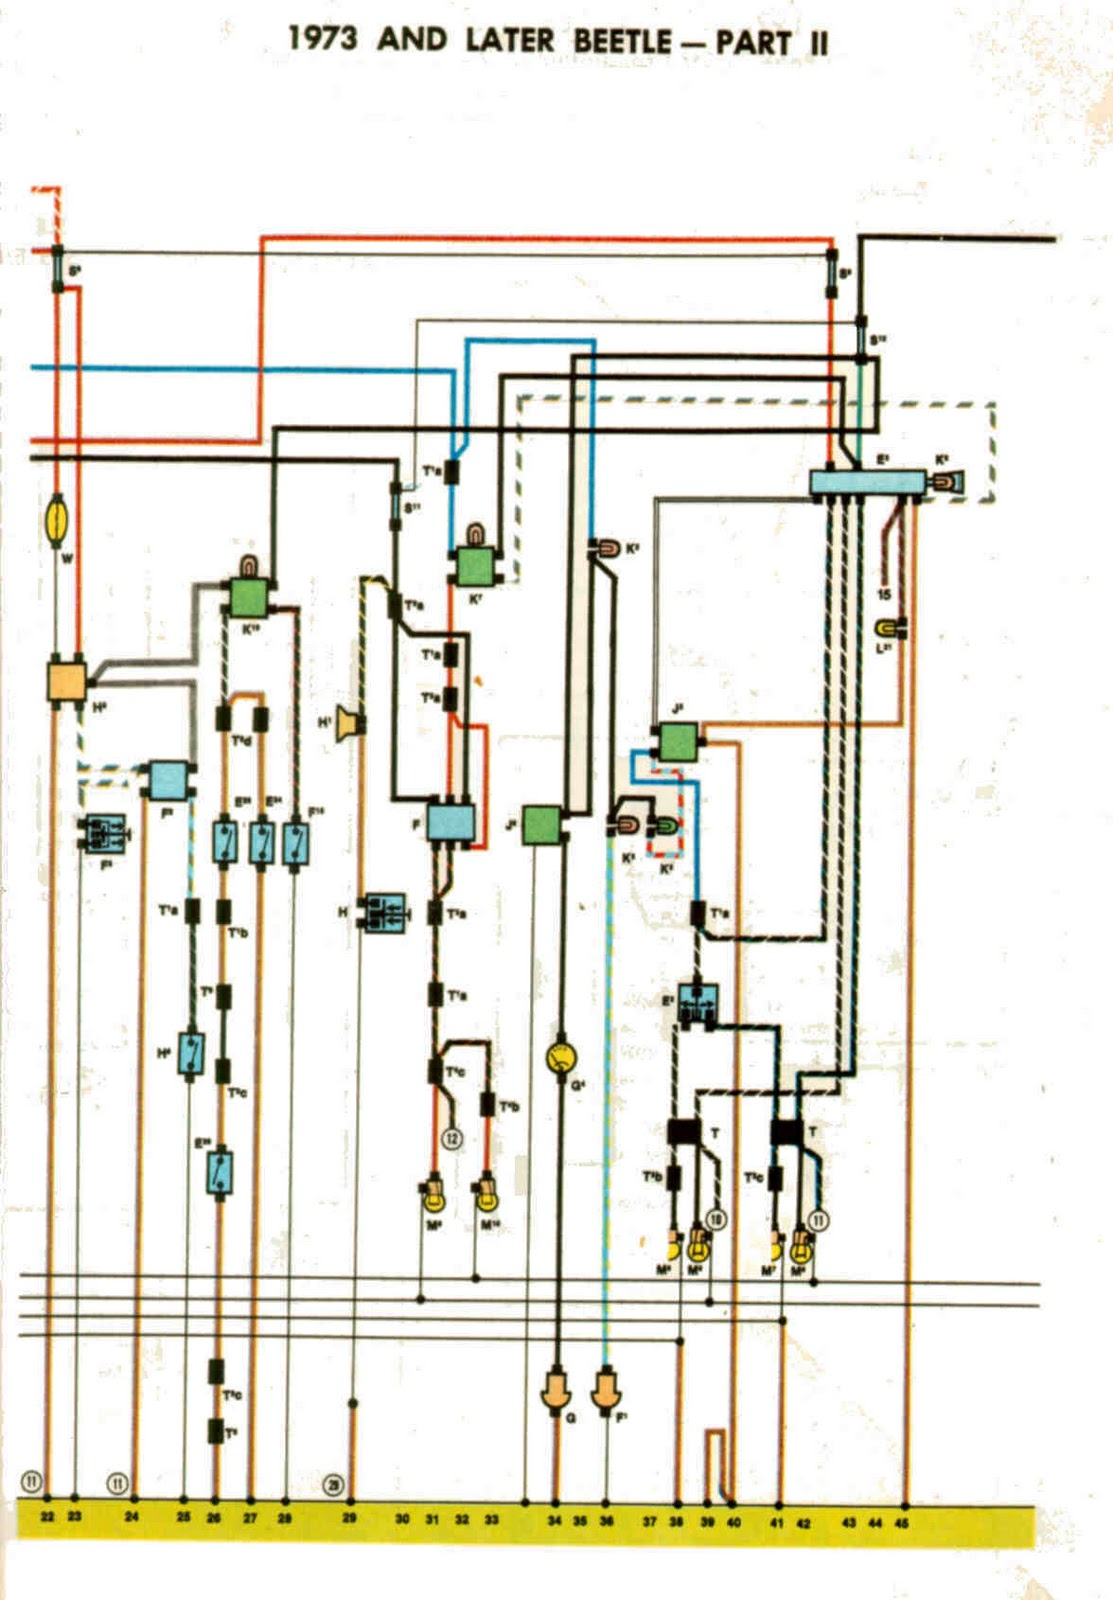 hight resolution of 1973 super beetle wiring diagram thegoldenbug 1973 vw beetle wiring diagram 1973 vw beetle engine wiring